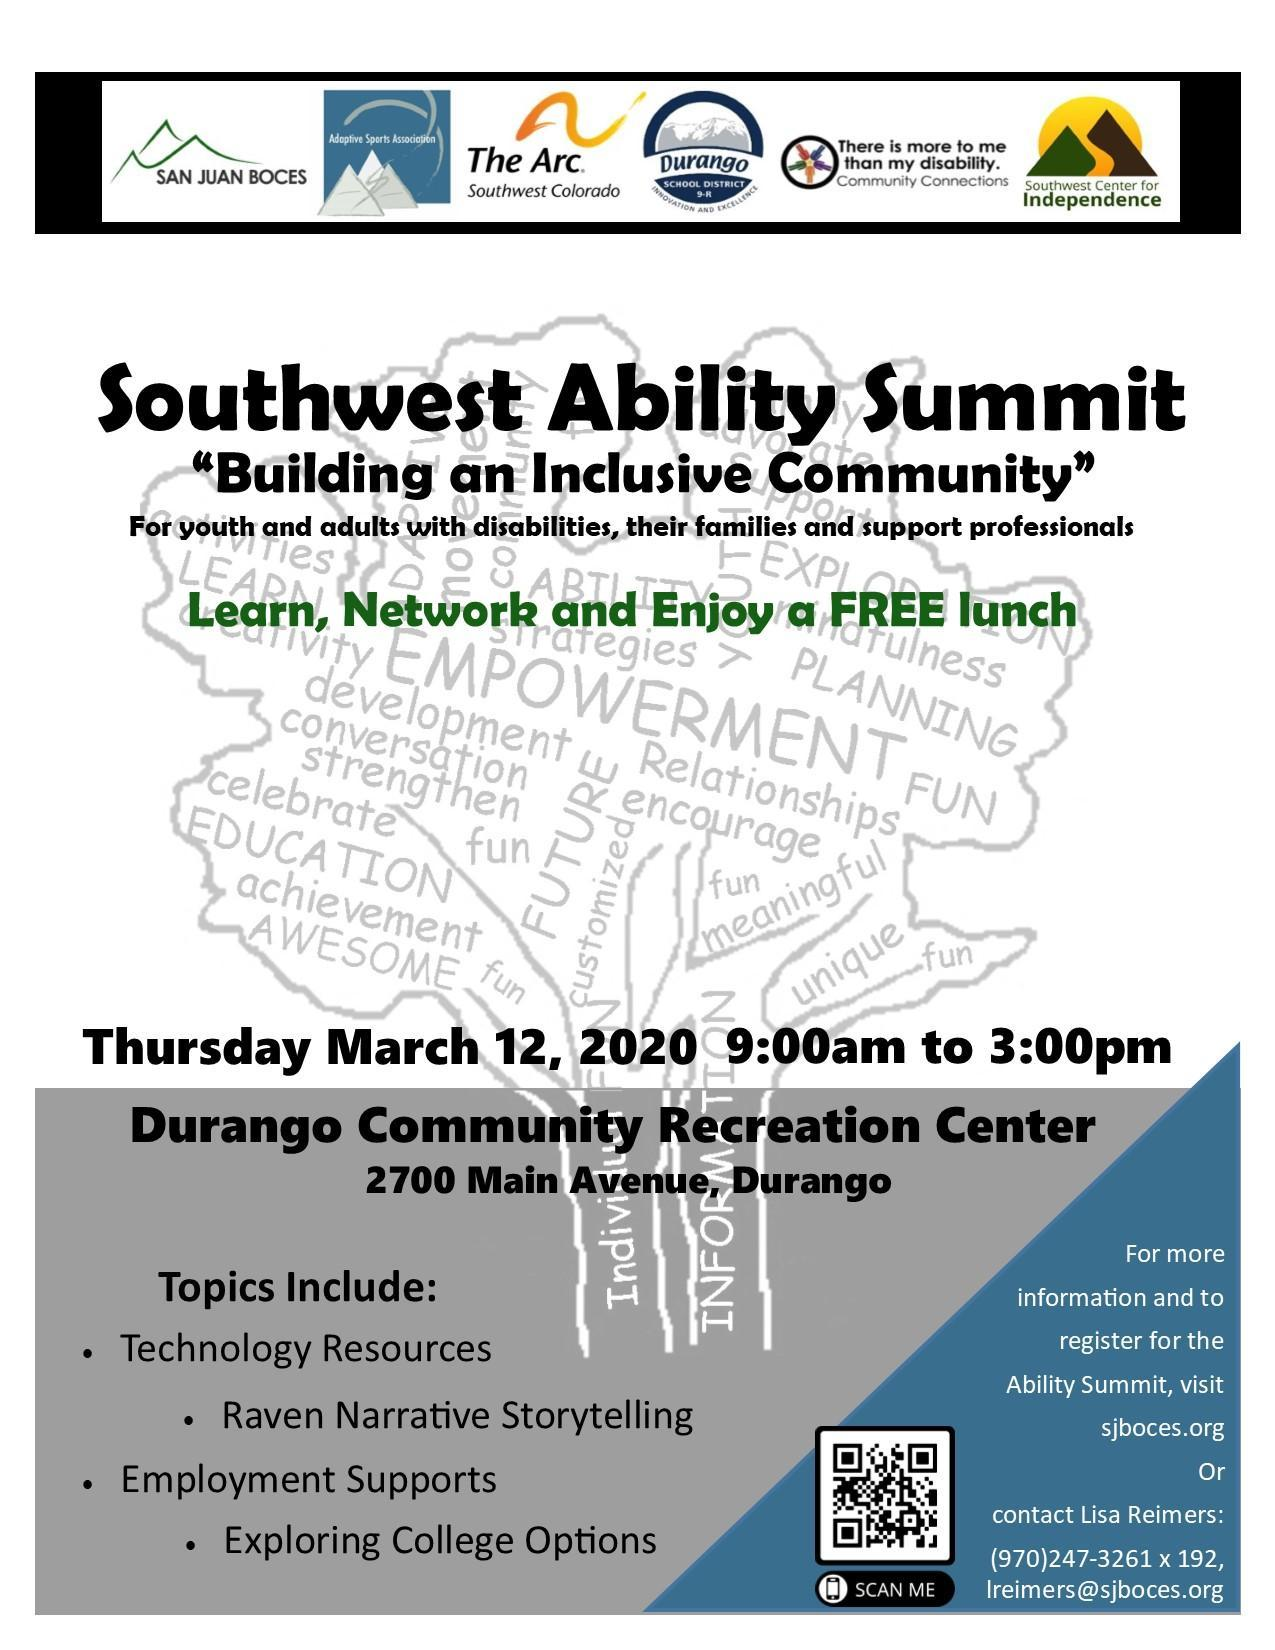 Southwest Ability Summit, Thursday March 12th, 2020 at the Durango Community Recreation Center from 9:00 am to 3:00 pm